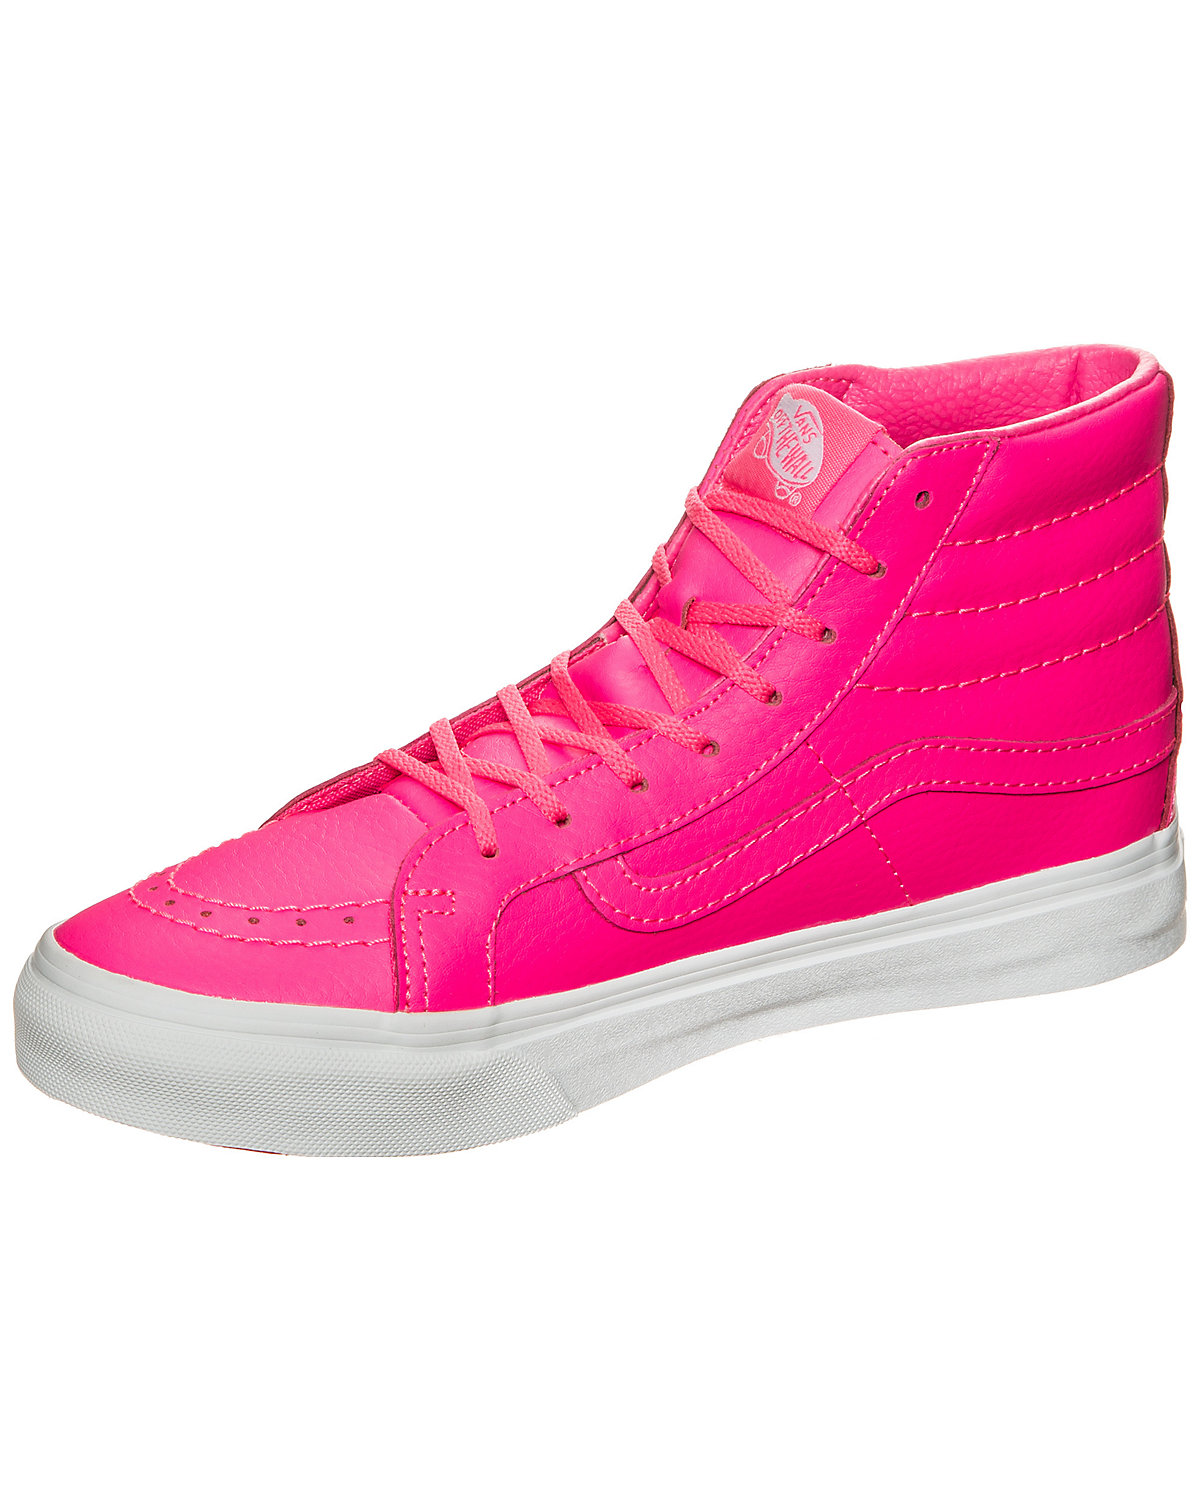 VANS, Vans Sk8-Hi Slim Neon Leather Sneakers, rosa